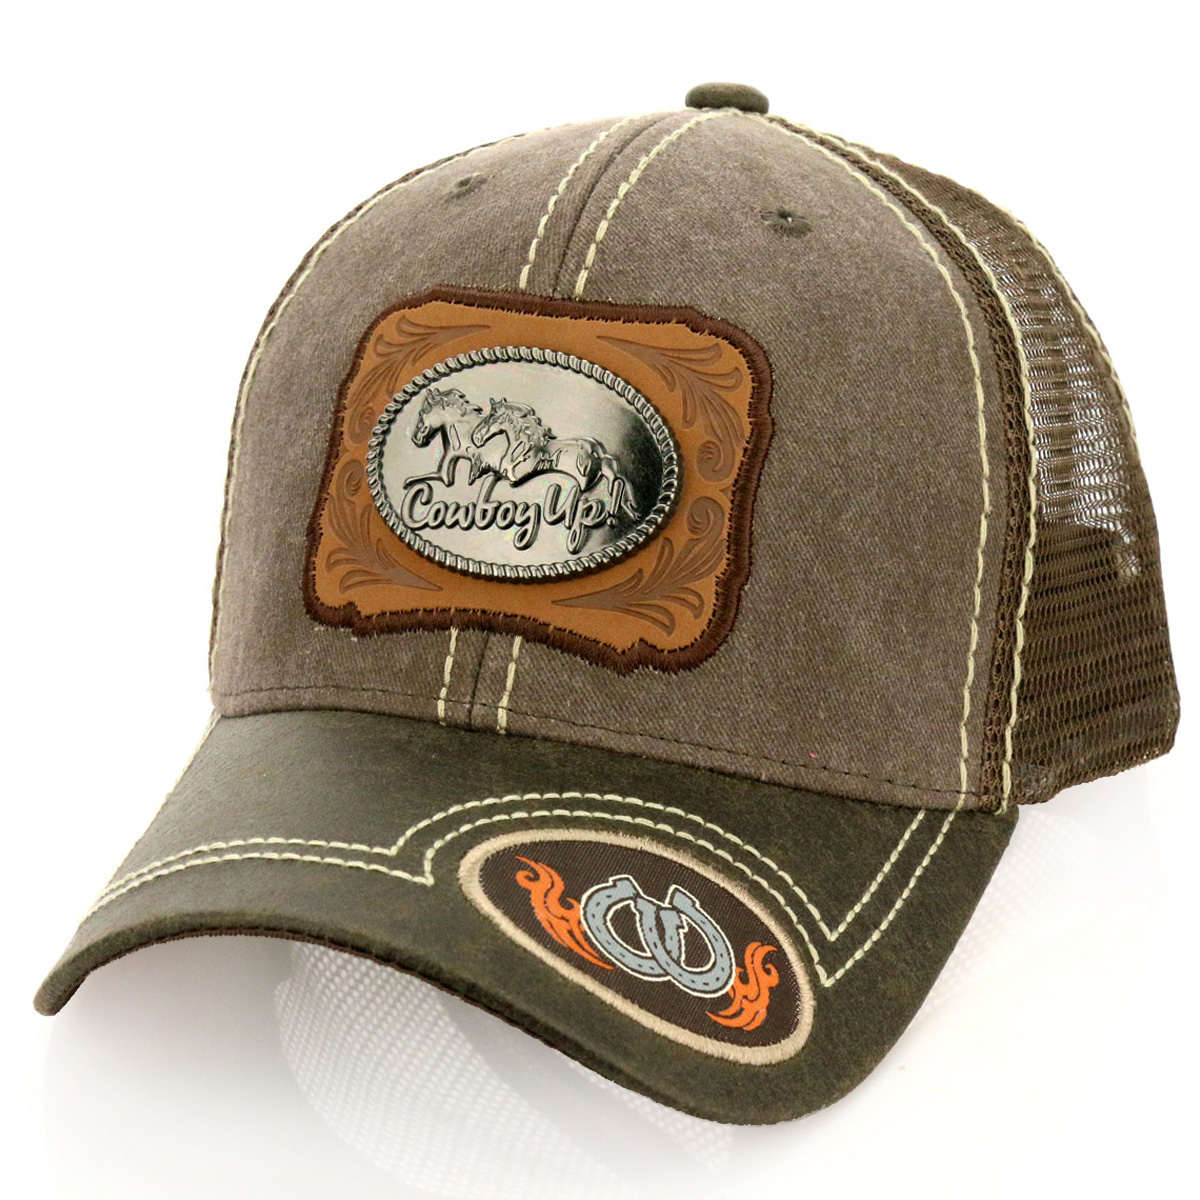 Pitbull Cowboy Up! Patch Metal Cotton Vintage Mesh Ball Cap-PB-115/BRN